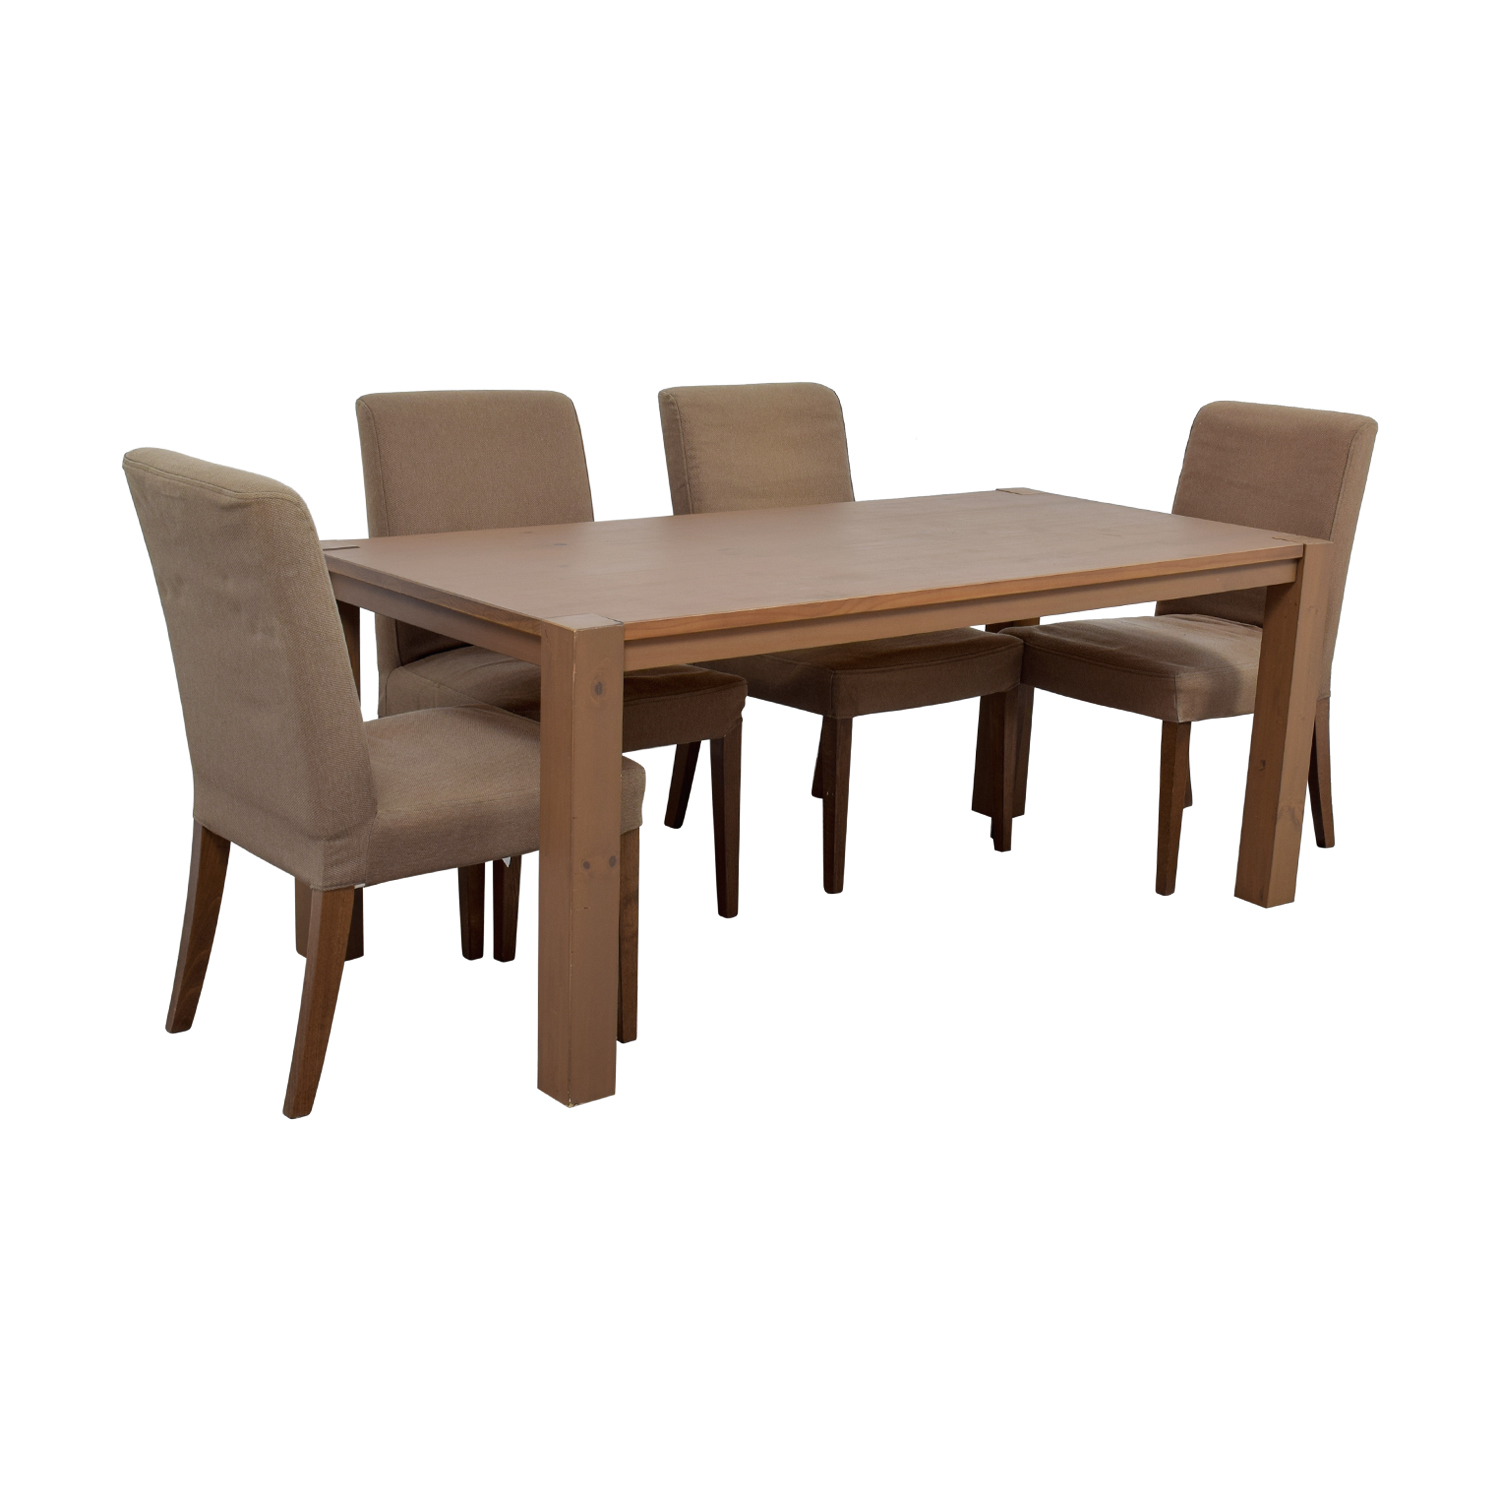 85 Off Ikea Dining Table Set With Henriksdal Chairs Tables